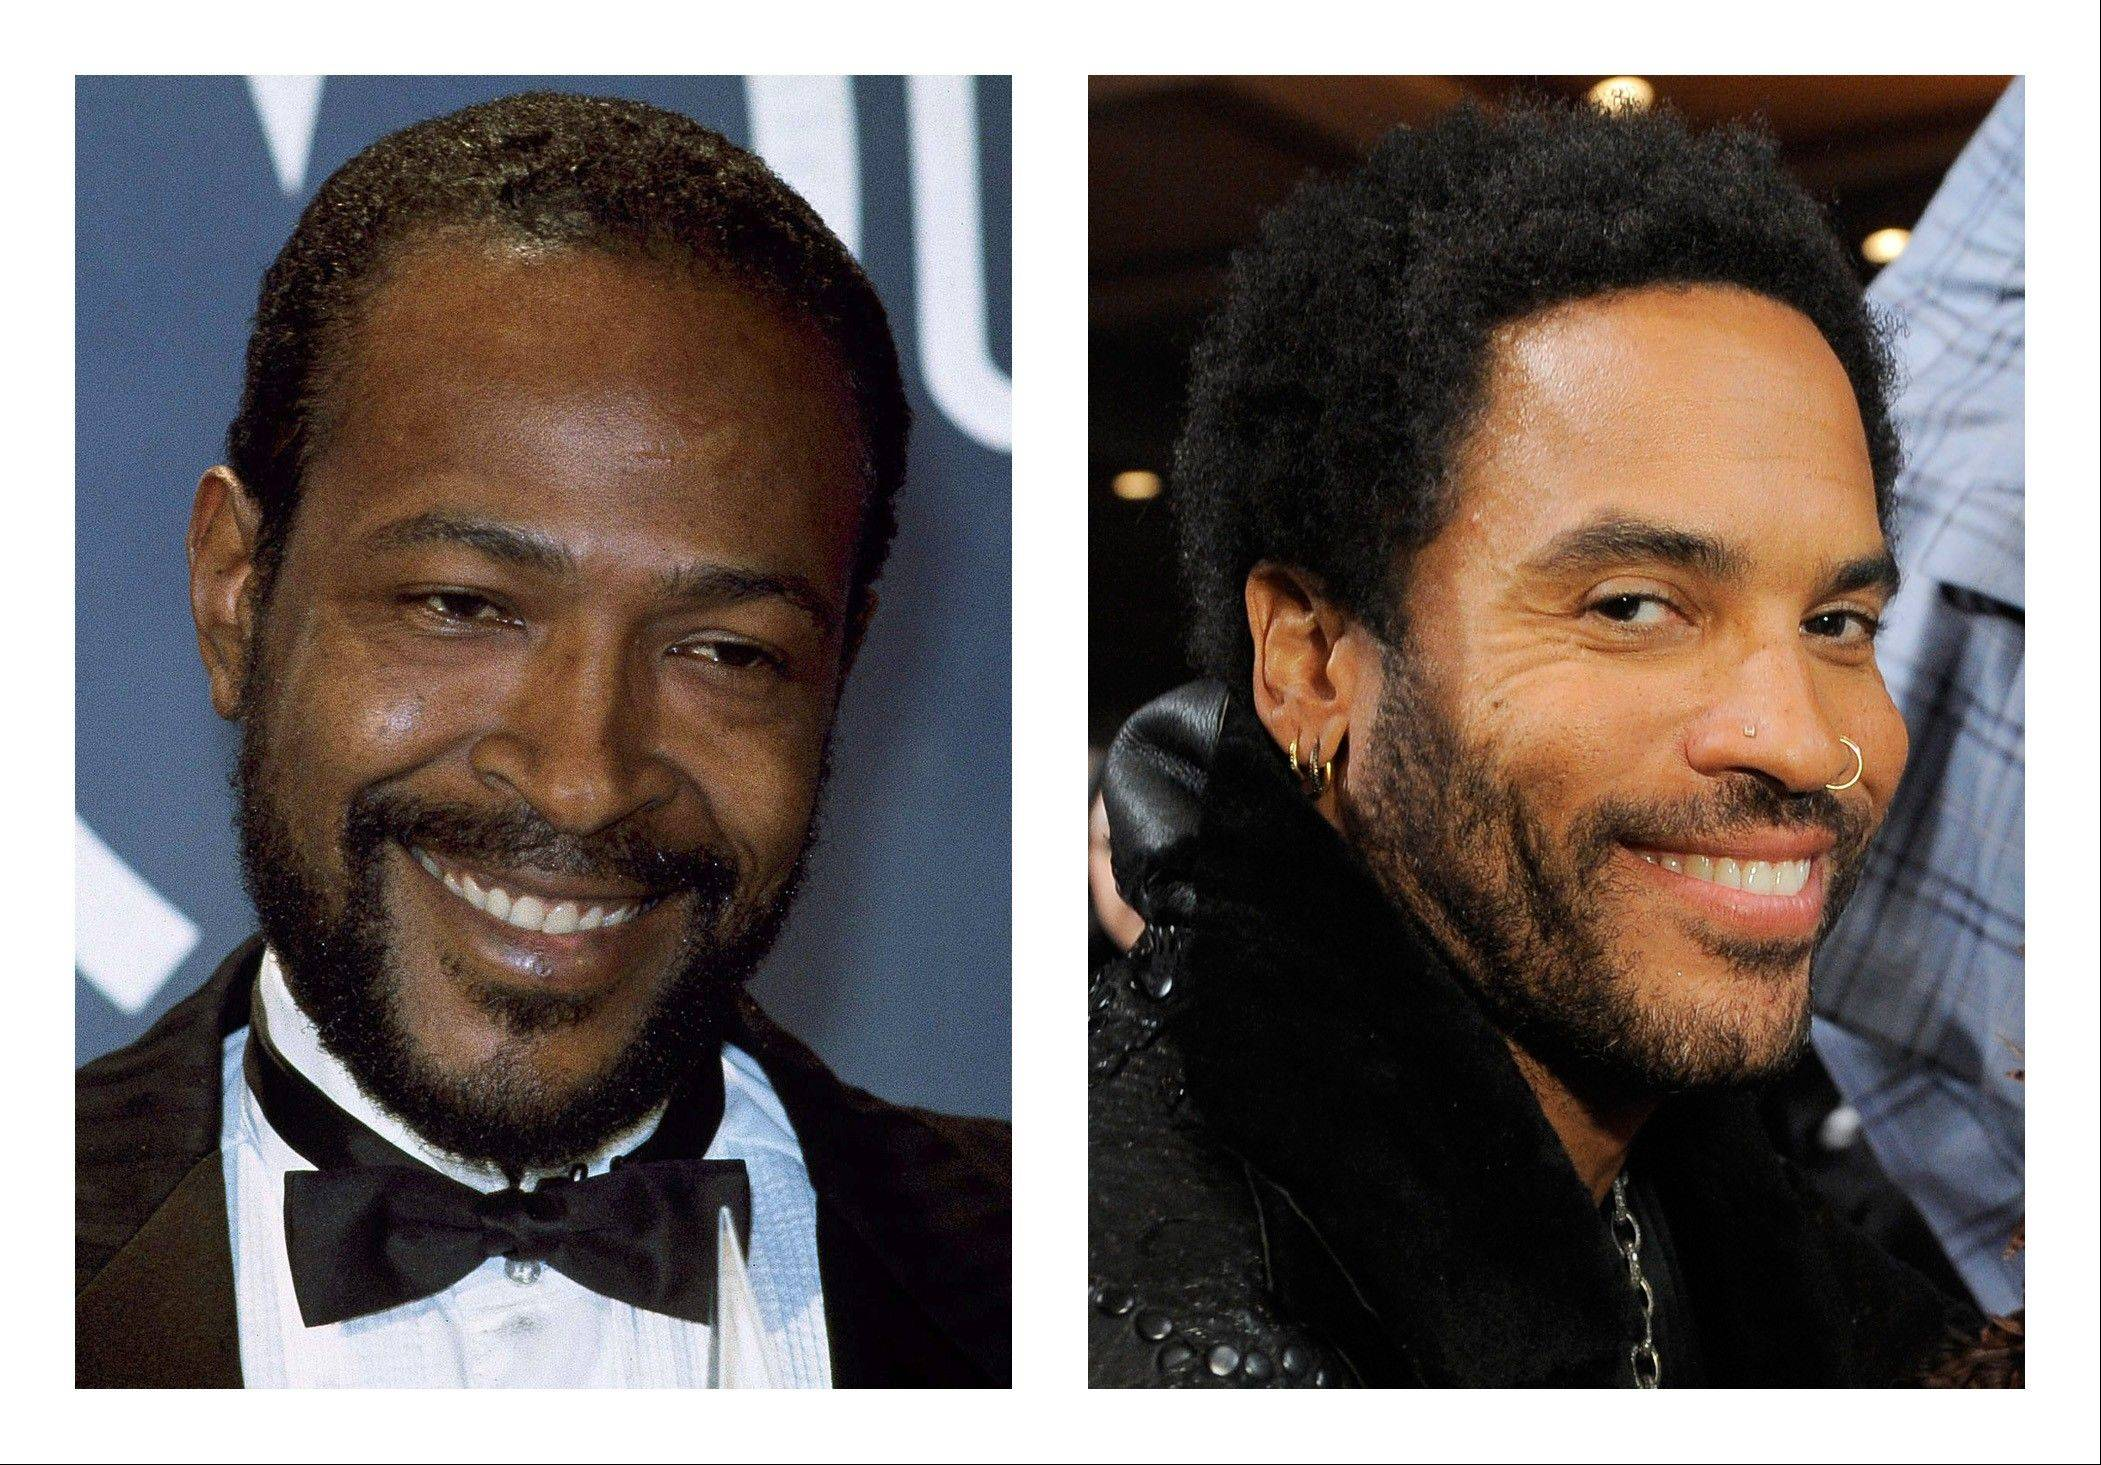 Lenny Kravitz, right, has signed on for his first leading film role, playing singer Marvin Gaye in a biopic that will be shot in 2013.